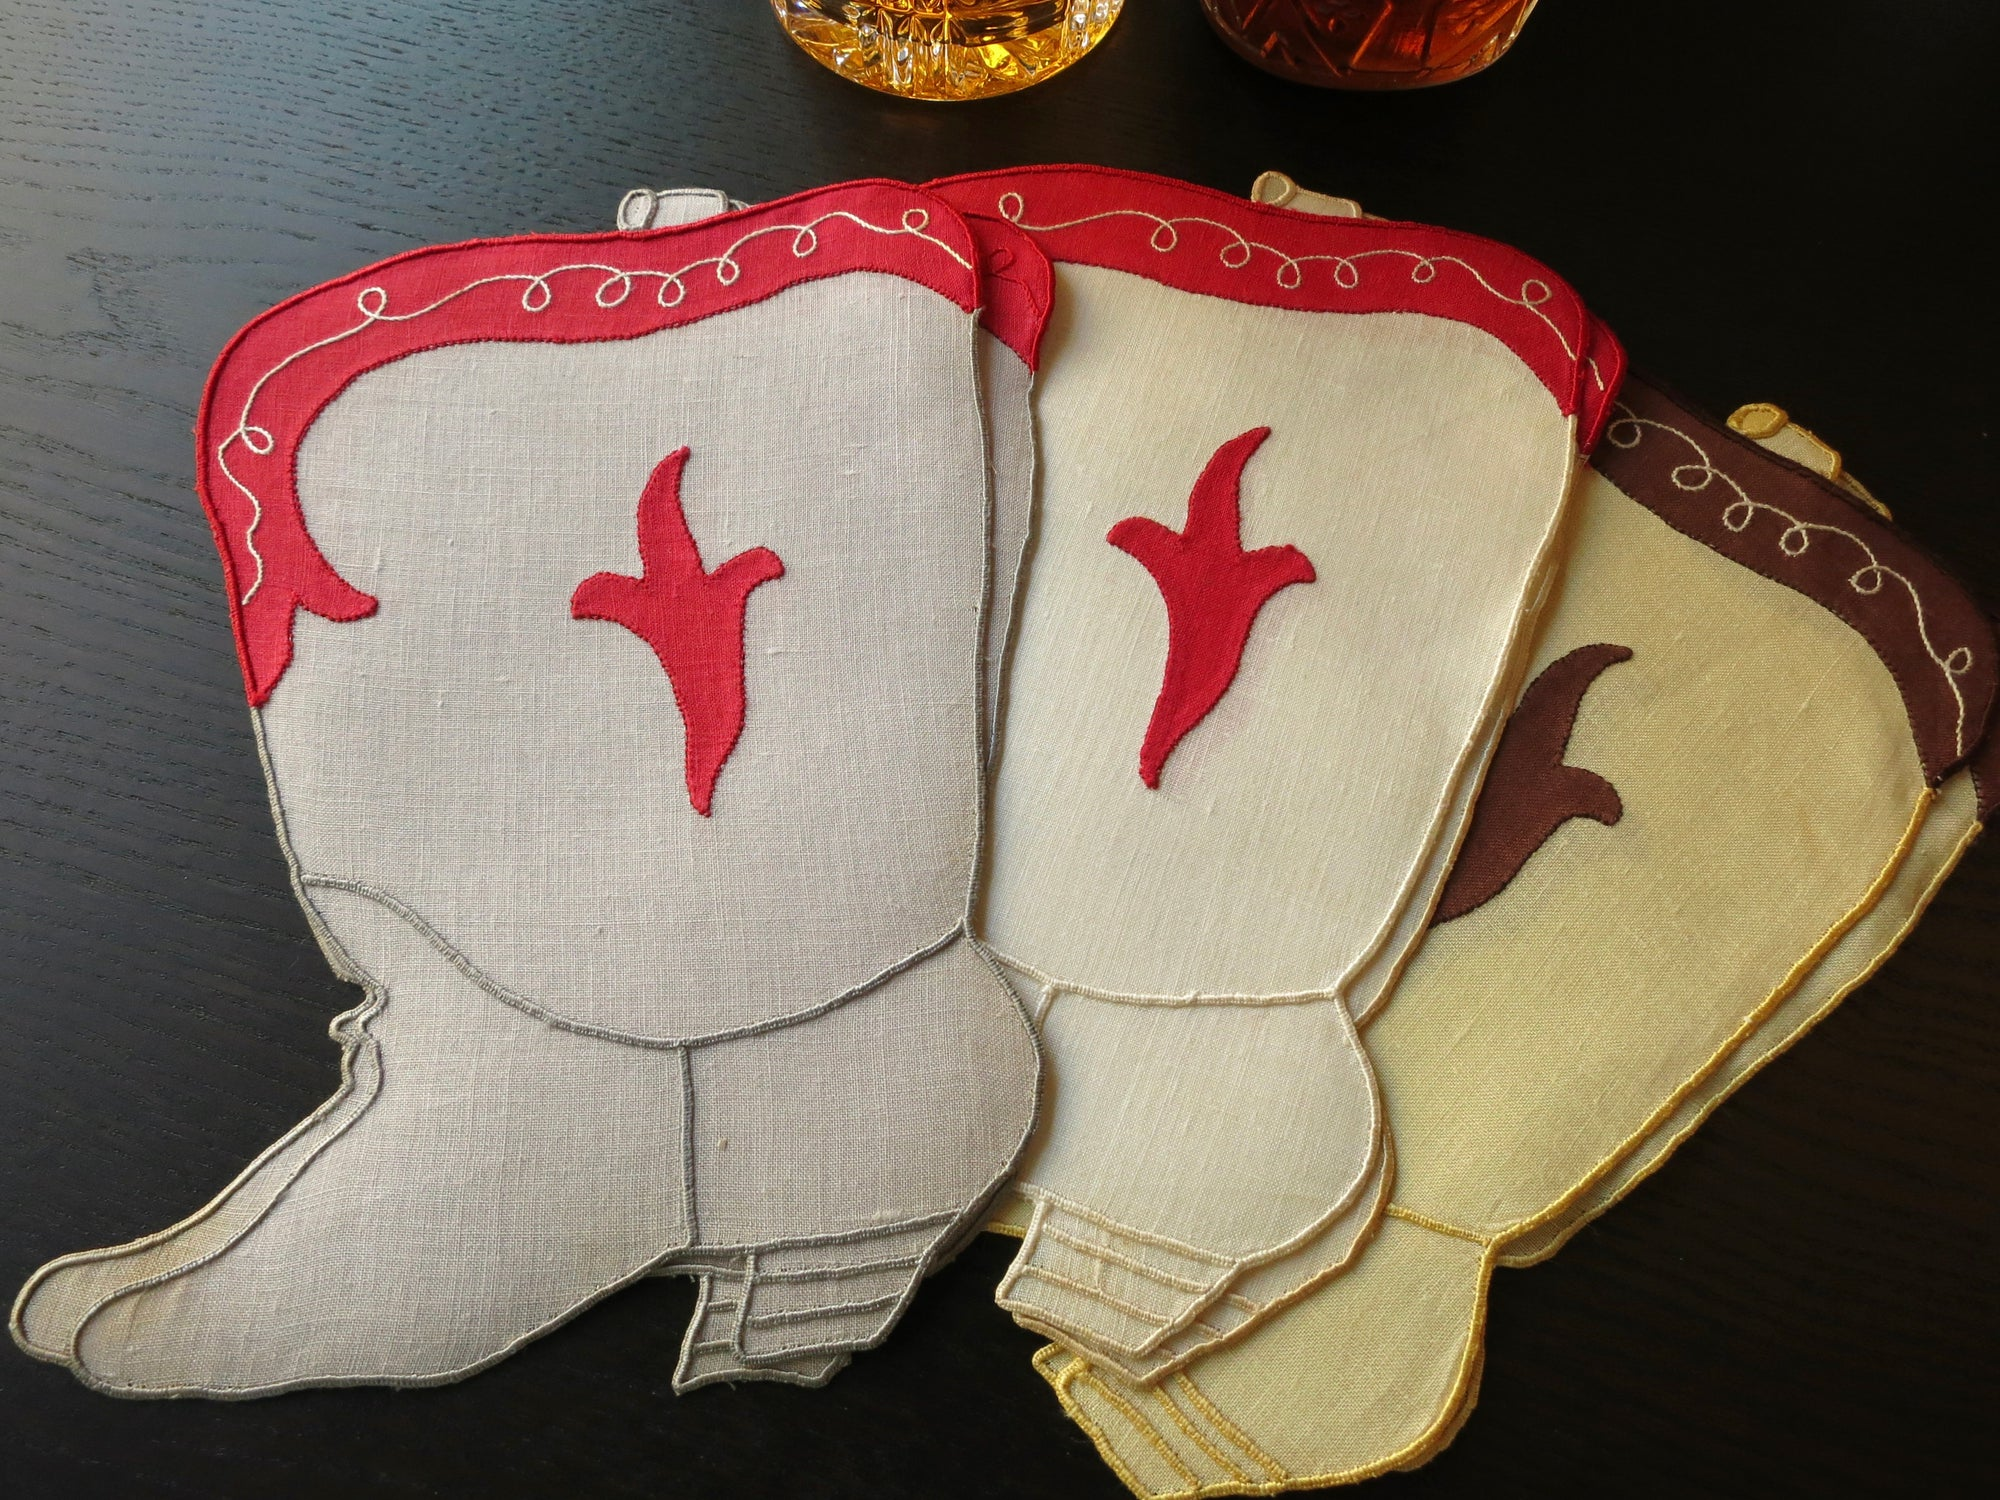 Cowboy Boots Vintage Madeira Embroidered Linen Cocktail Napkins - Set of 6